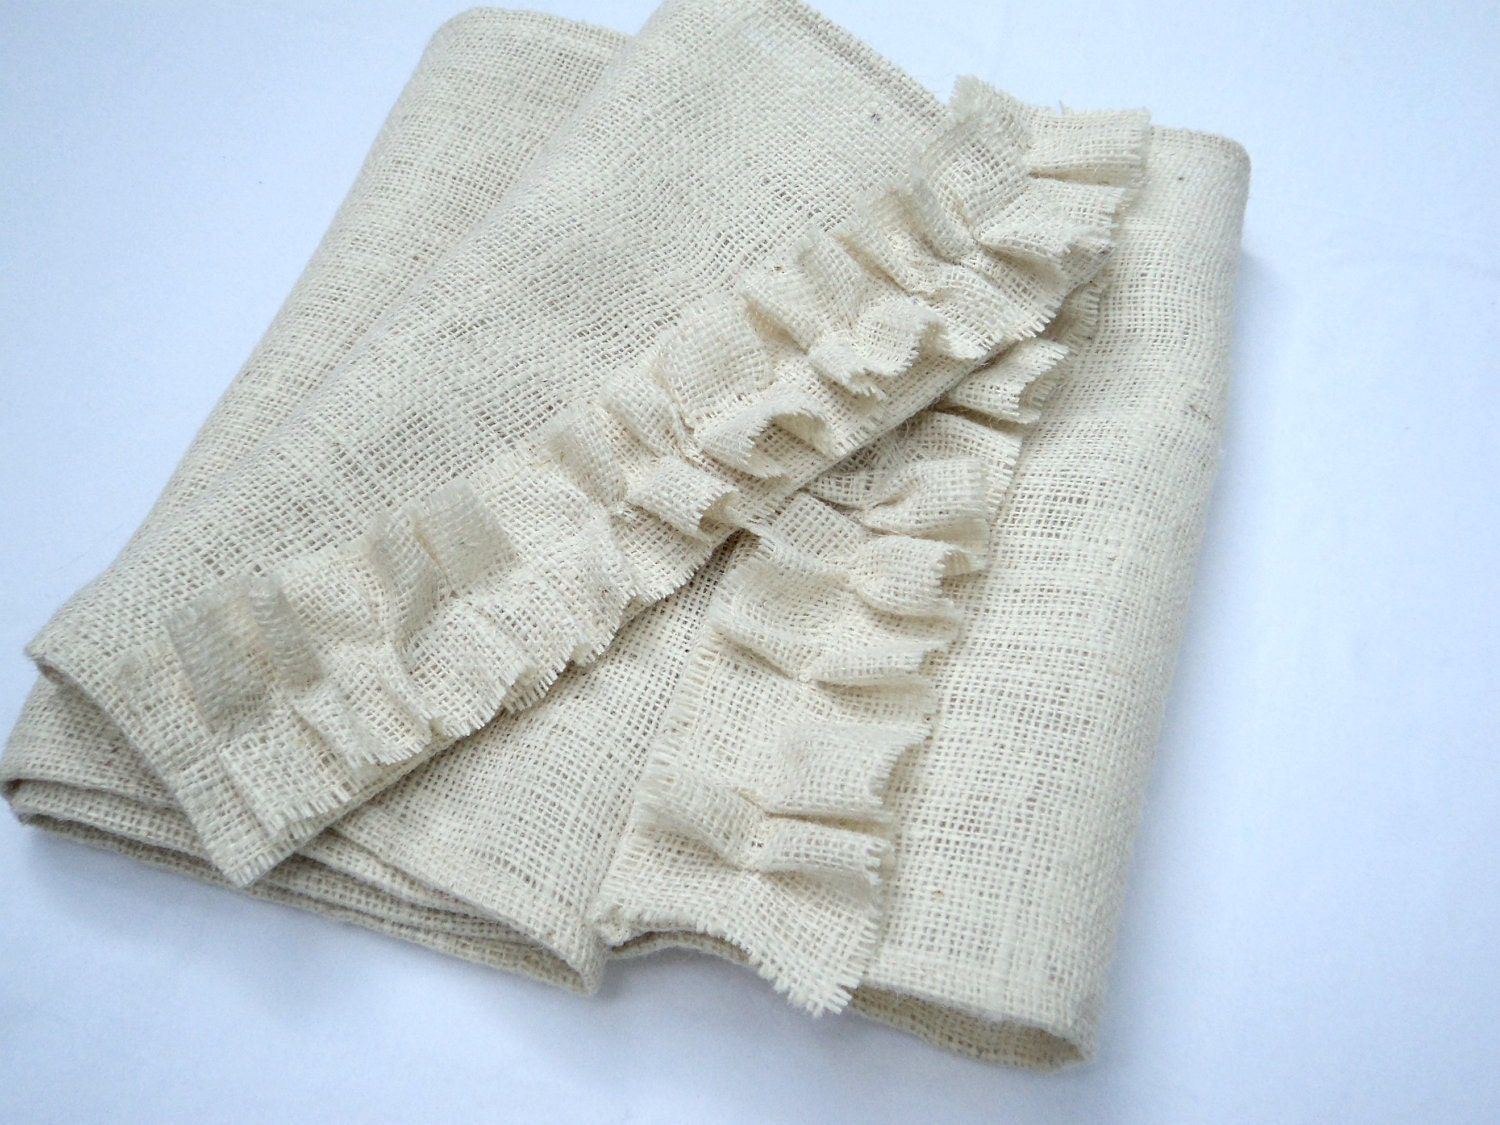 Burlap Table Runner Reserved Listing for Whitney/Marta